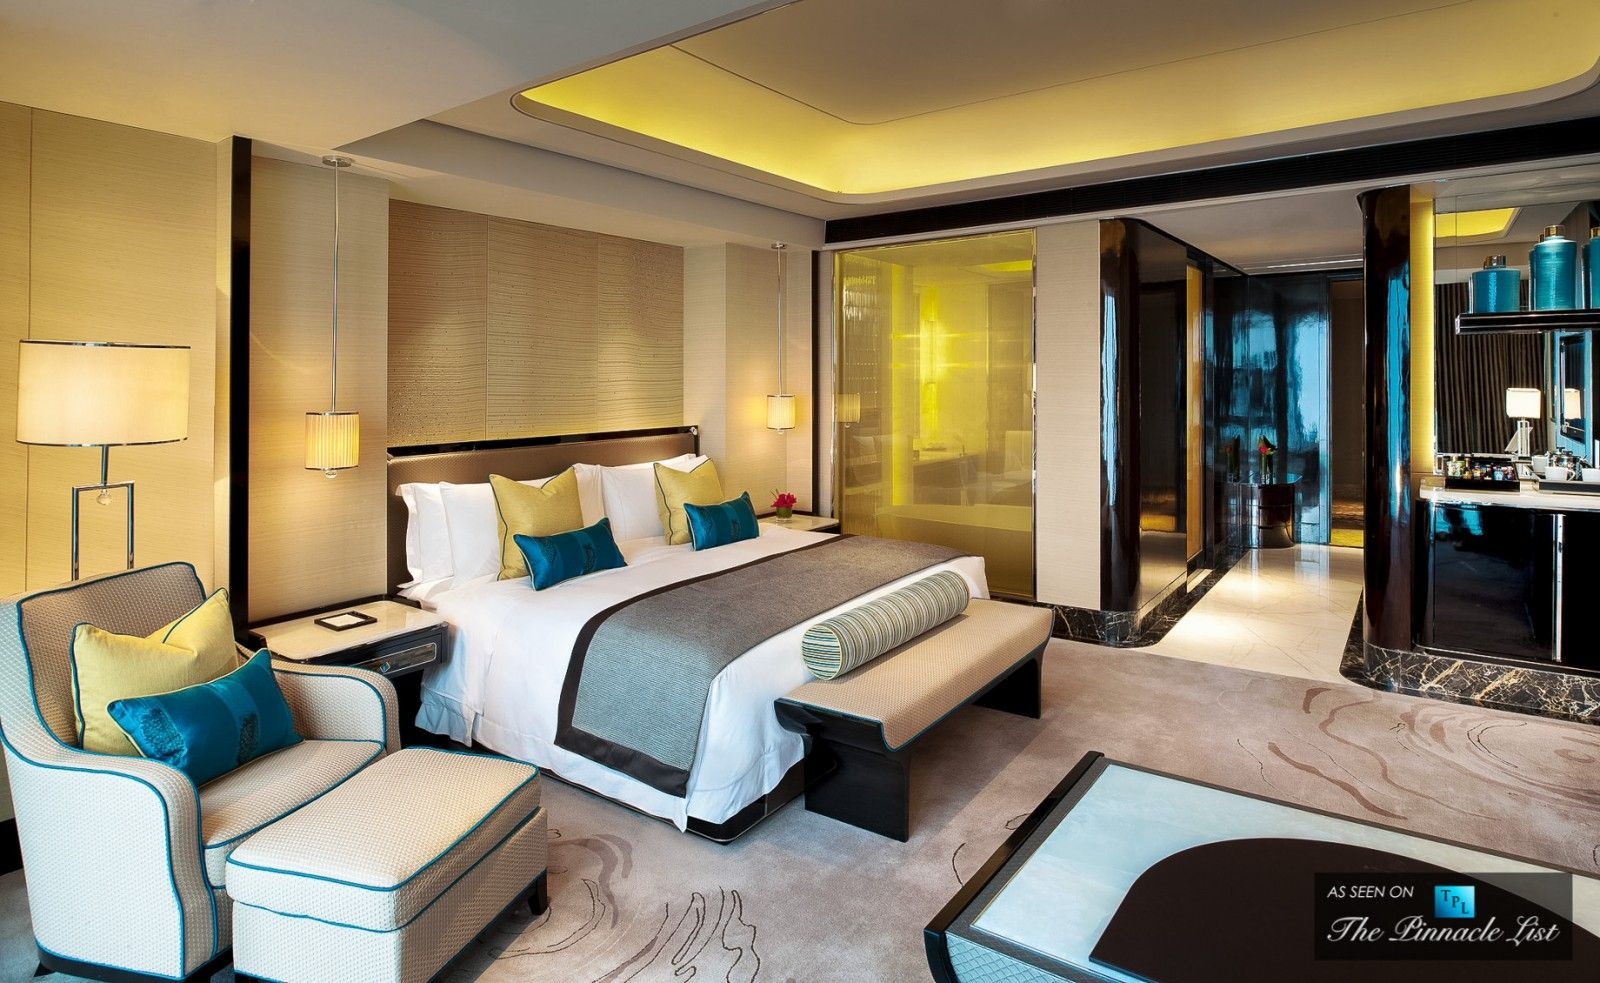 Comfort Abounds In This Hotel Suite St Regis Luxury Hotel Shenzhen China Hotel Rooms To